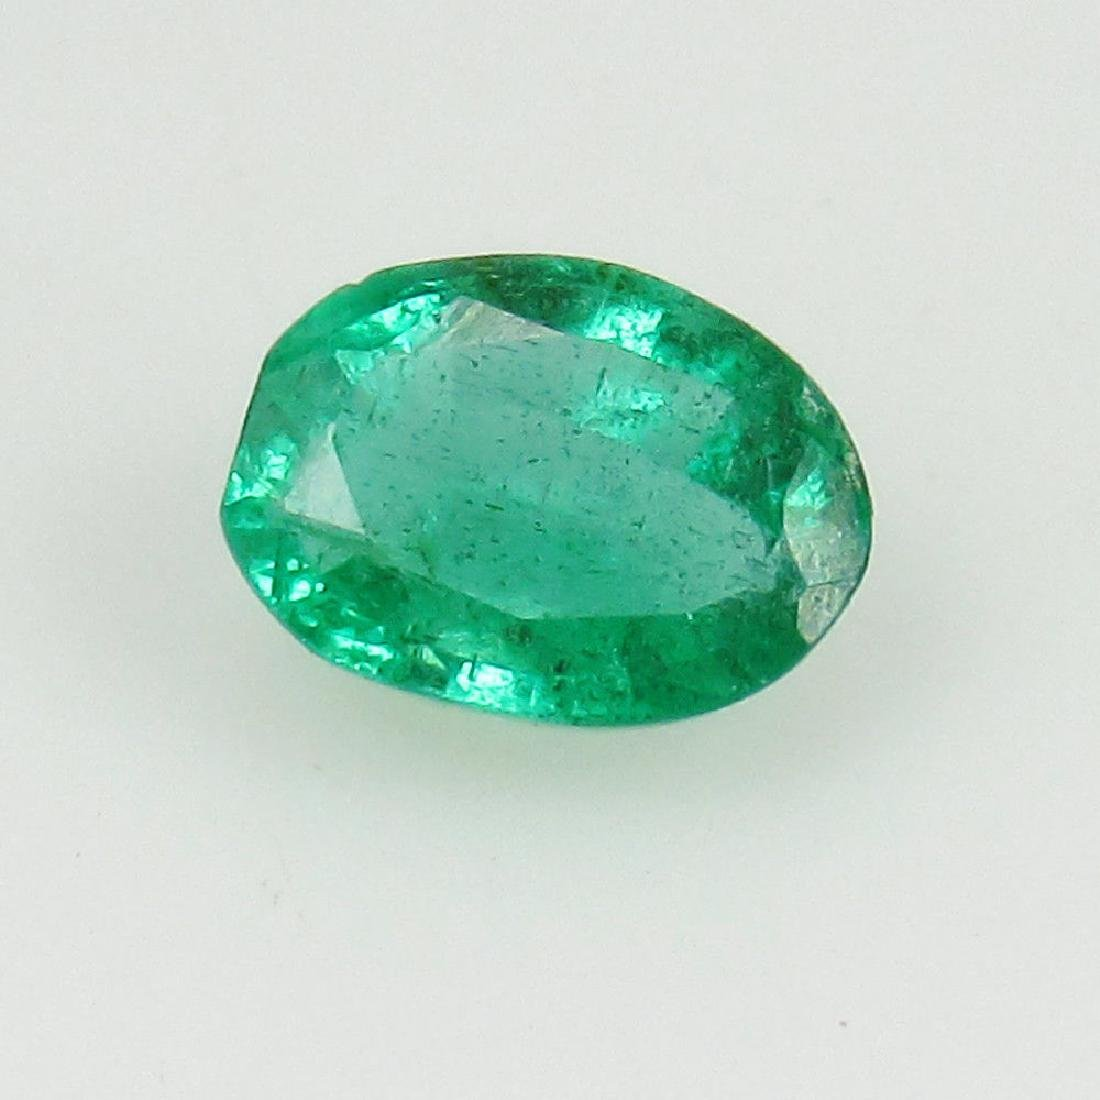 0.55 Ct Genuine Loose Zambian Emerald Oval cut Top - 2